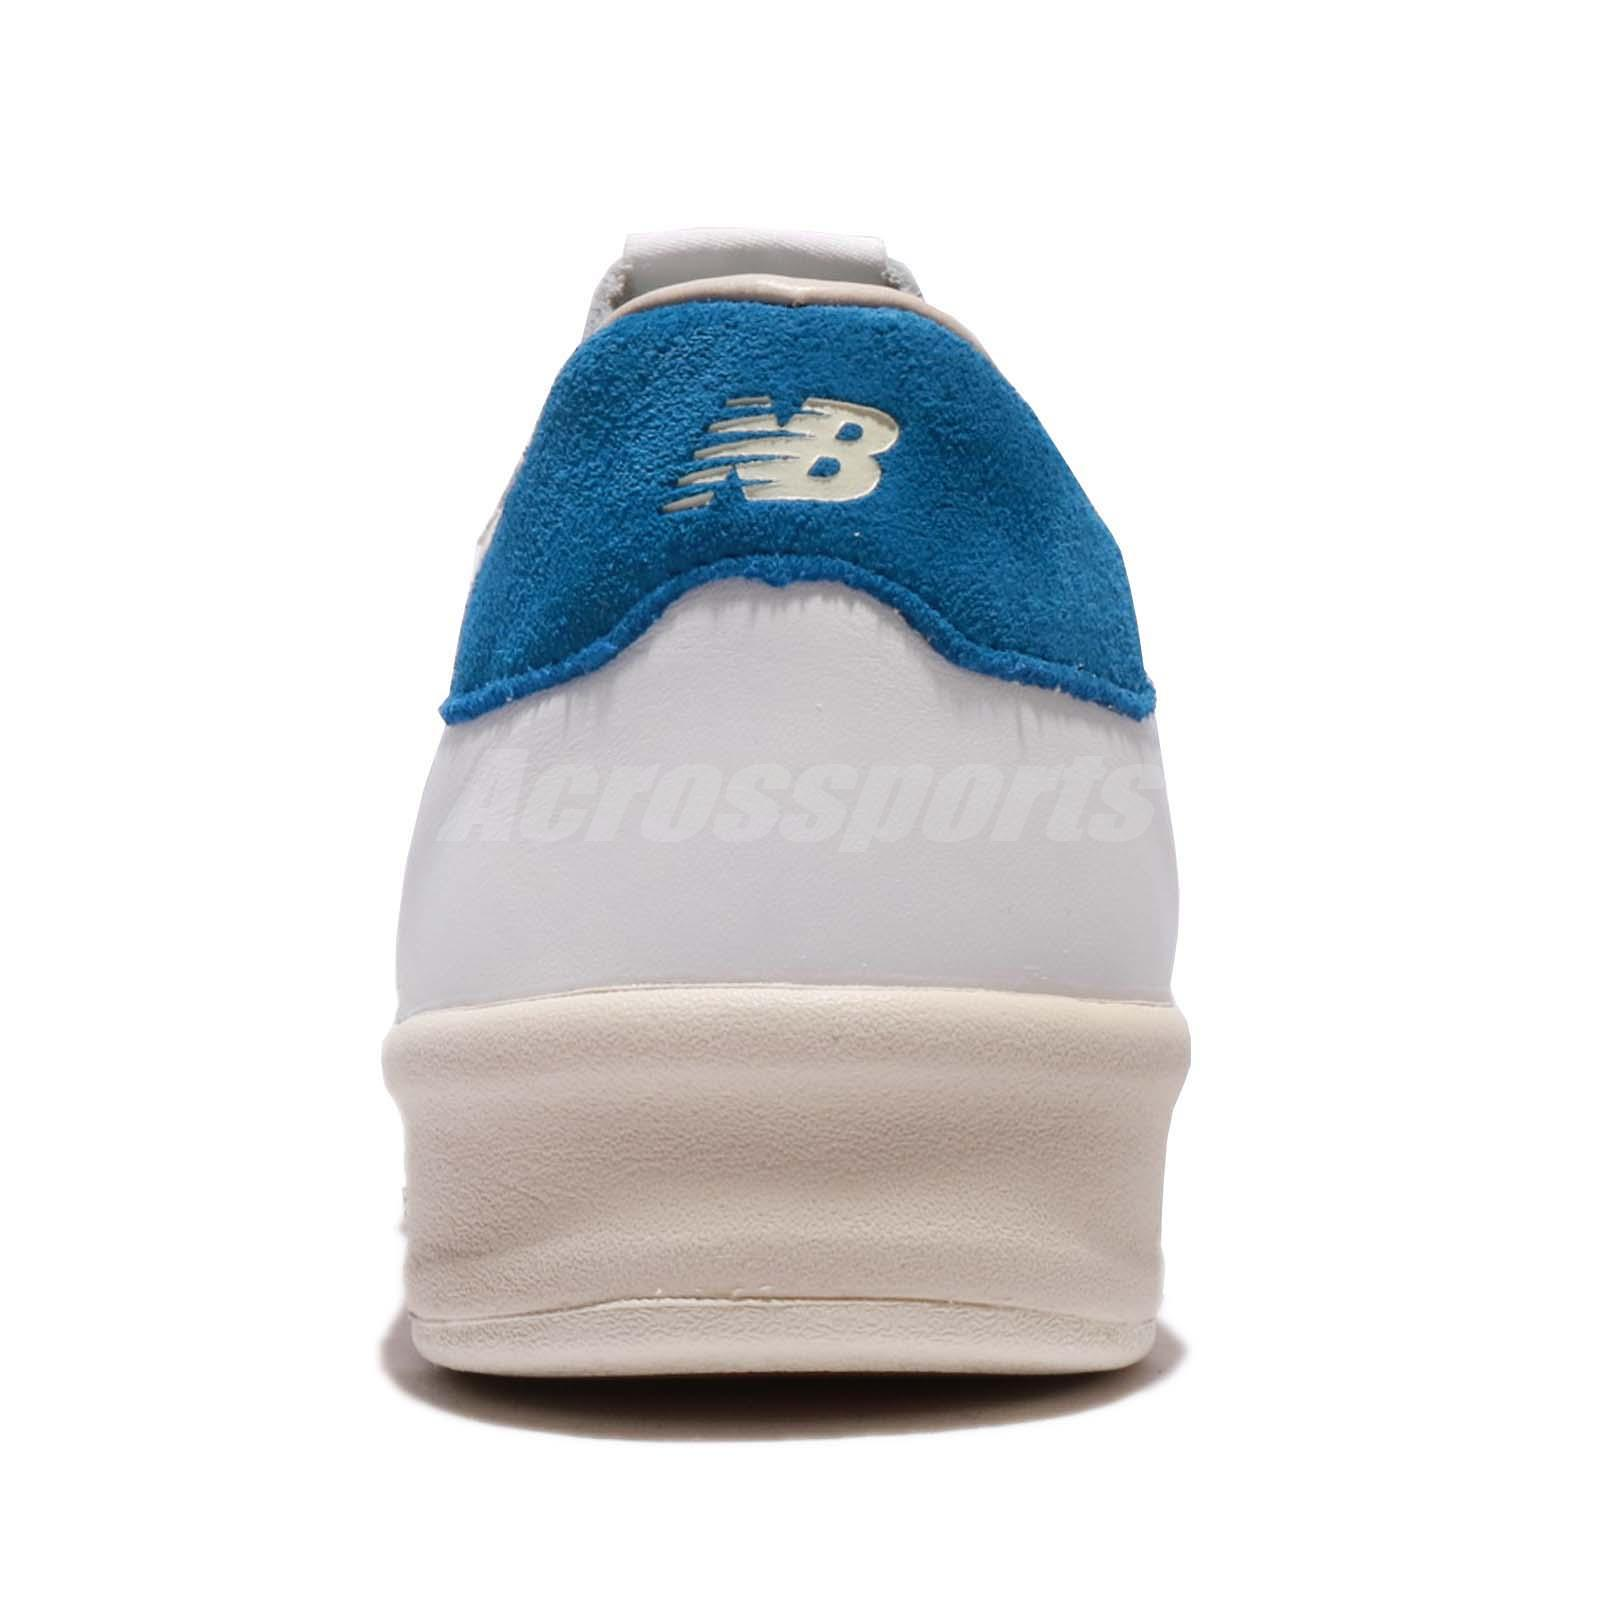 reputable site 195e5 d3782 Details about New Balance CRT300WL D White Ivory Blue Leather Men Shoes  Sneakers CRT300 WLD